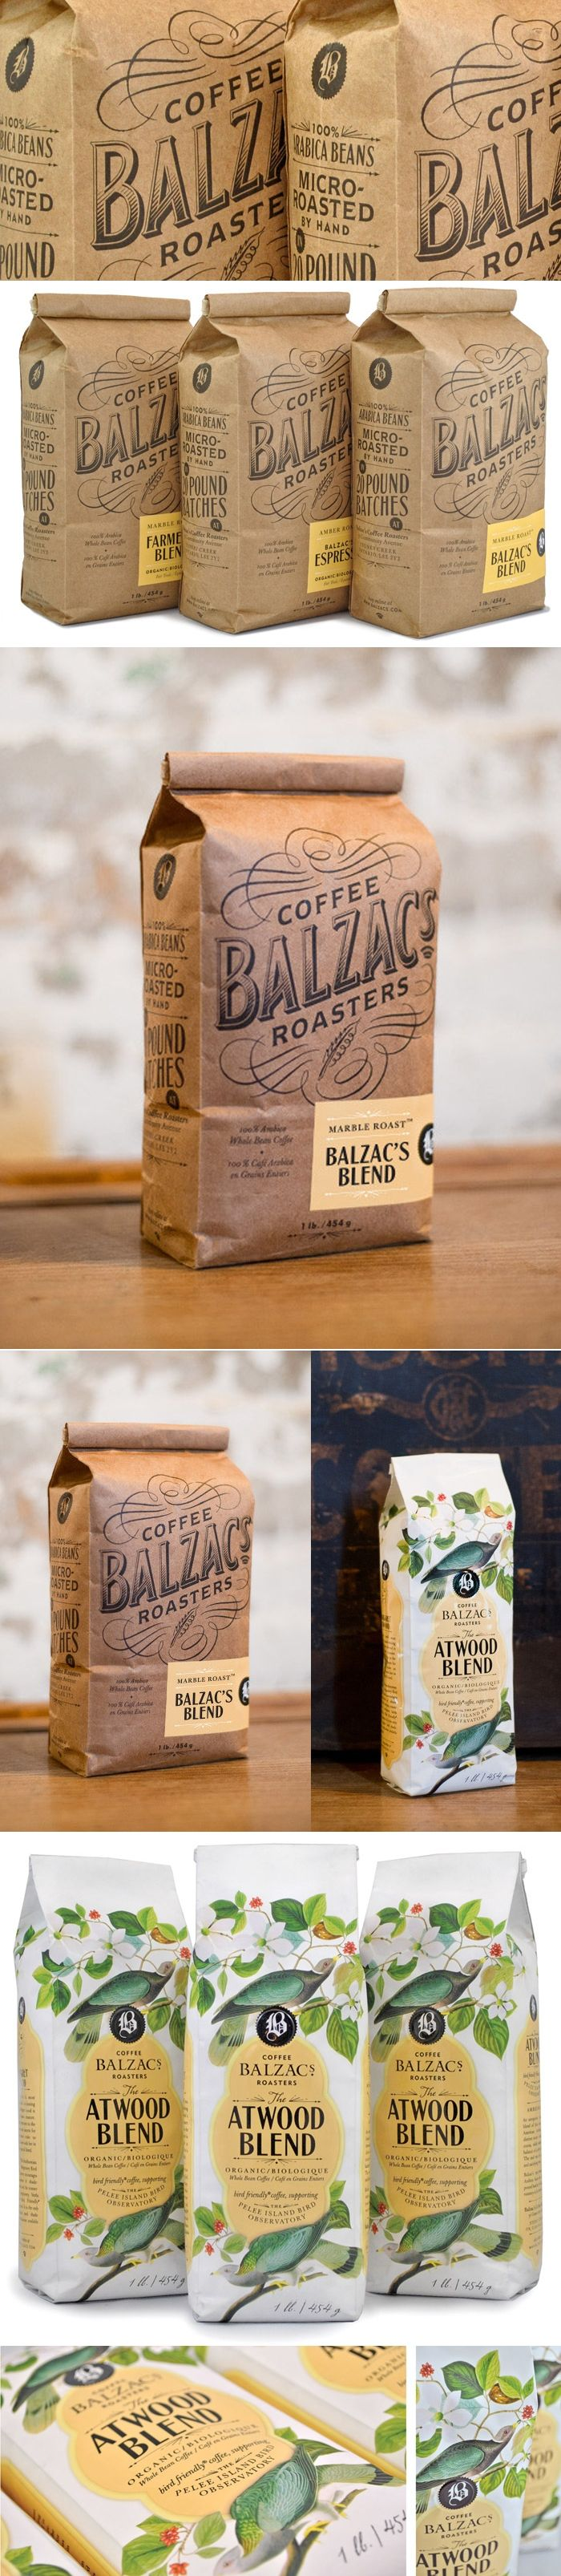 Balzac's Coffee Roasters — The Dieline | Packaging & Branding Design & Innovation News